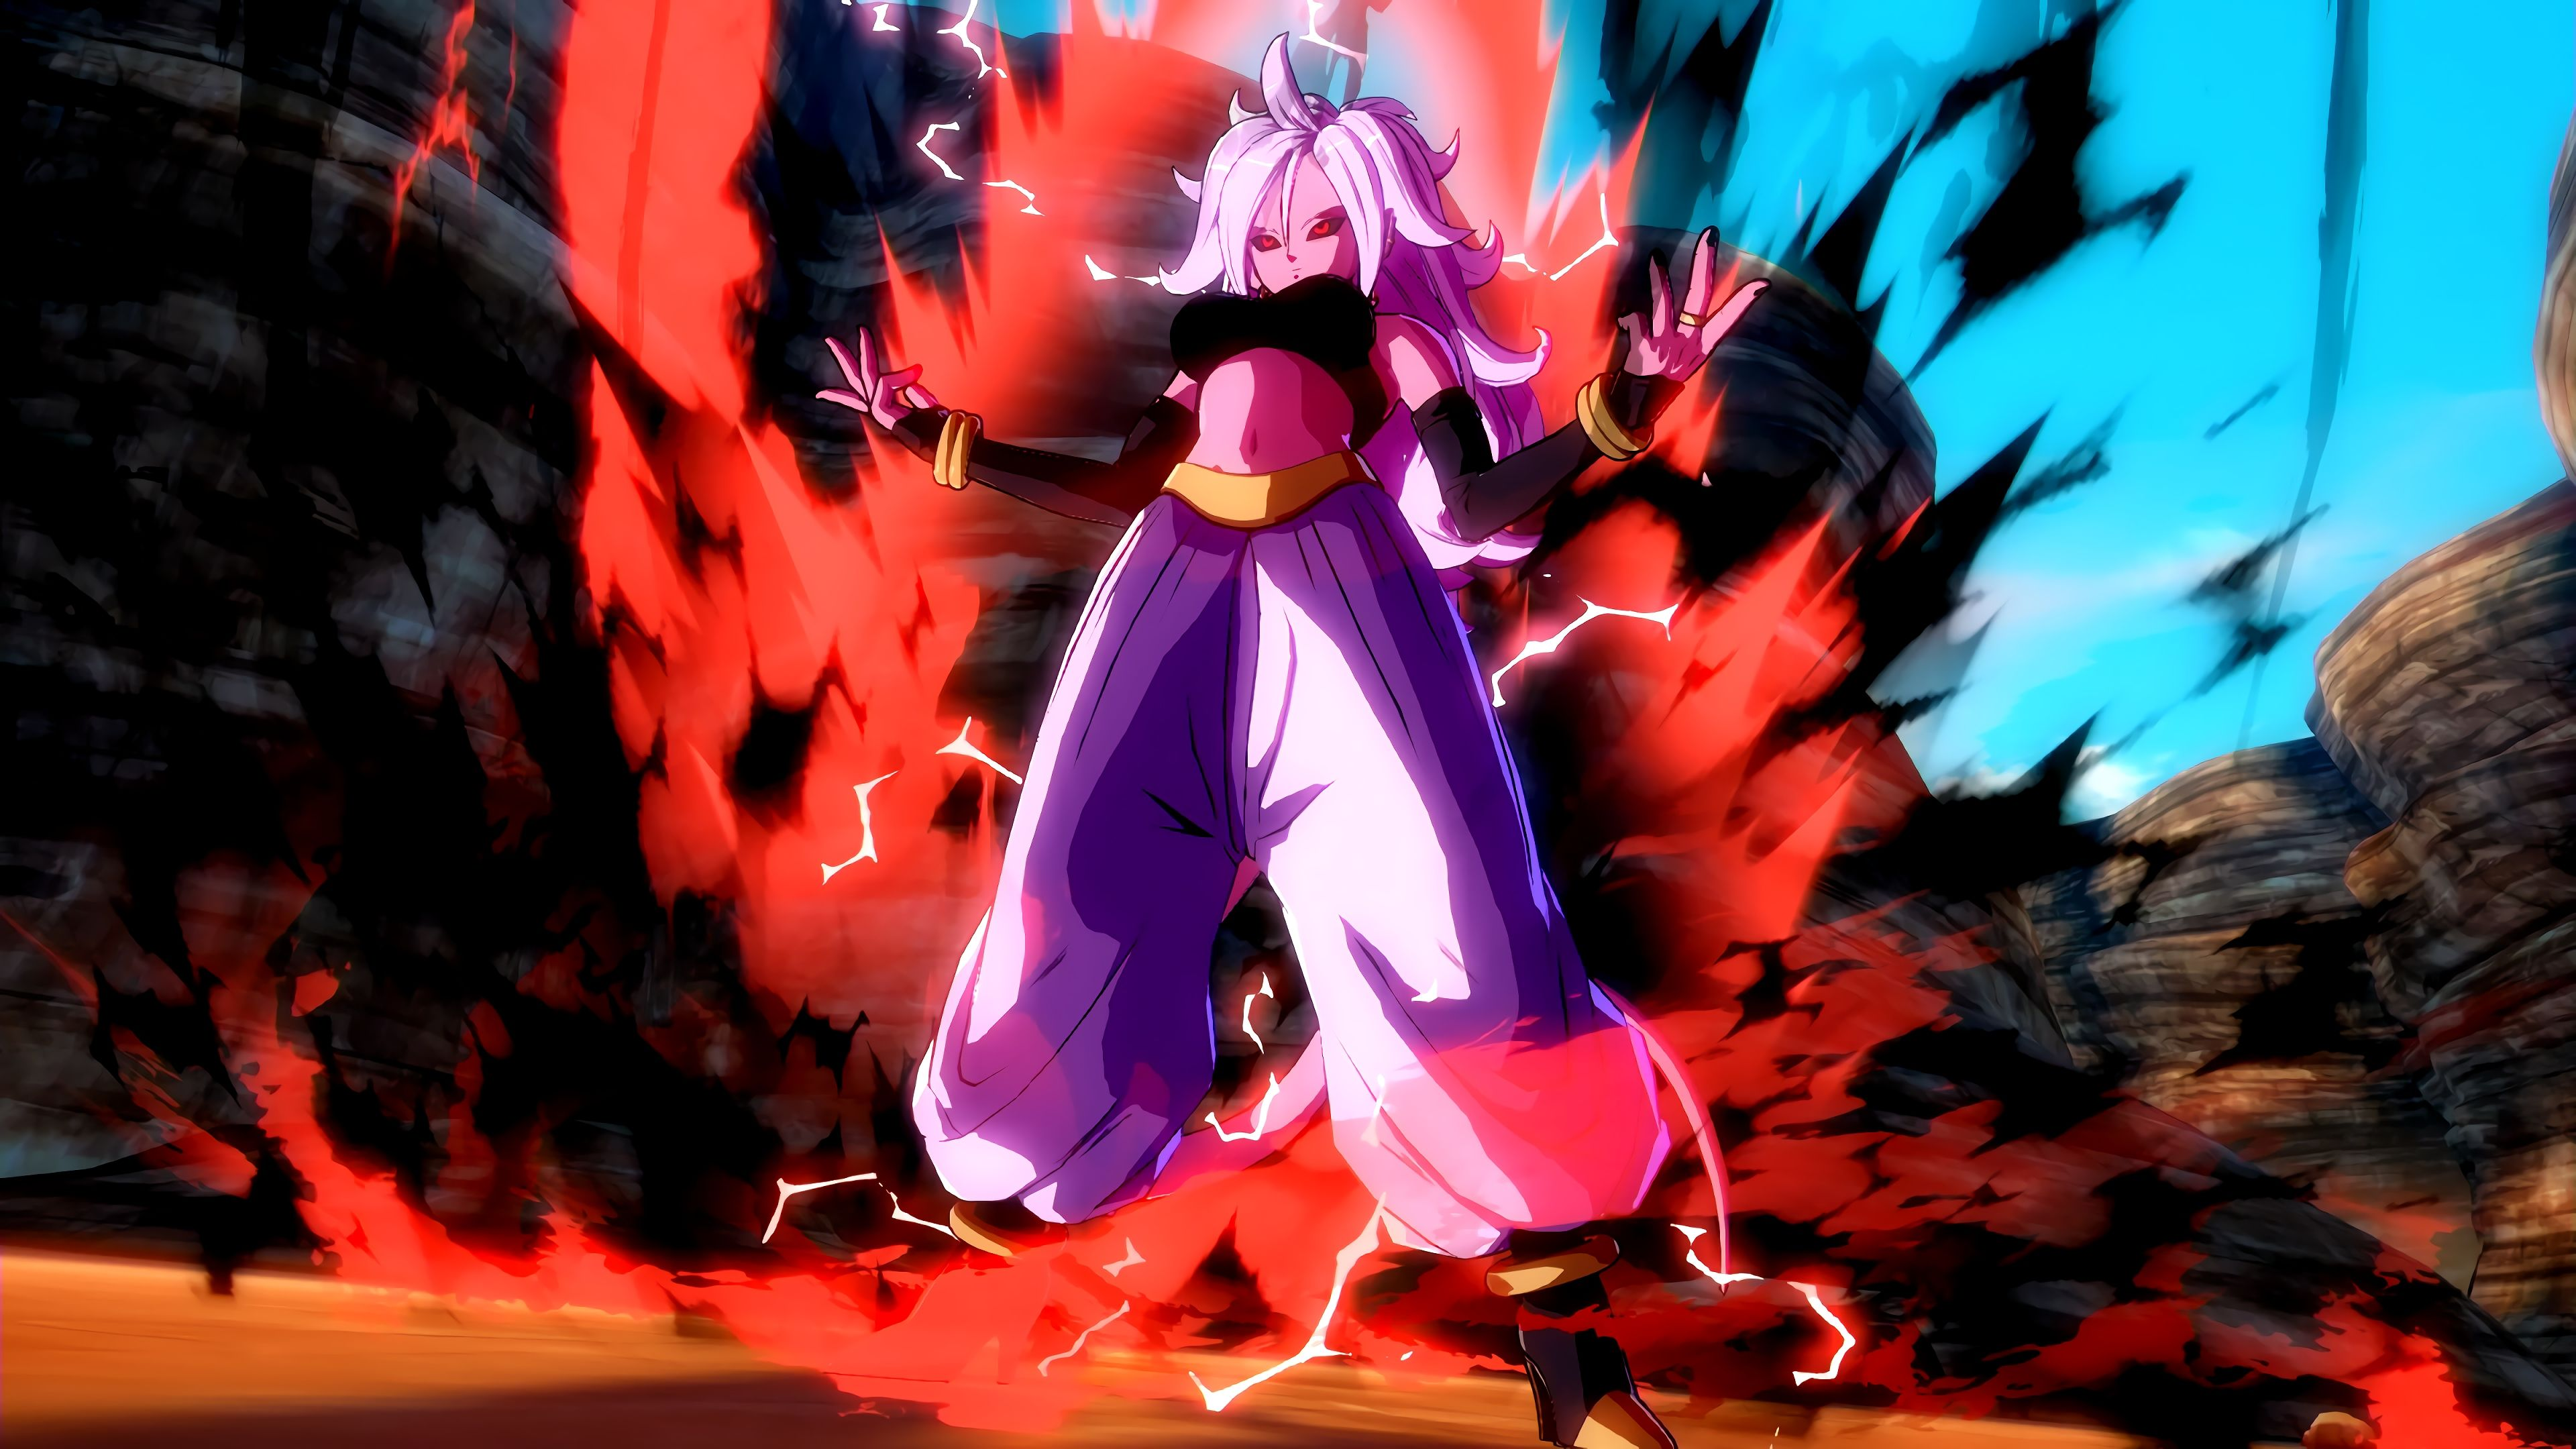 Majin Android 21 Wallpaper By Desertwiggle On Deviantart